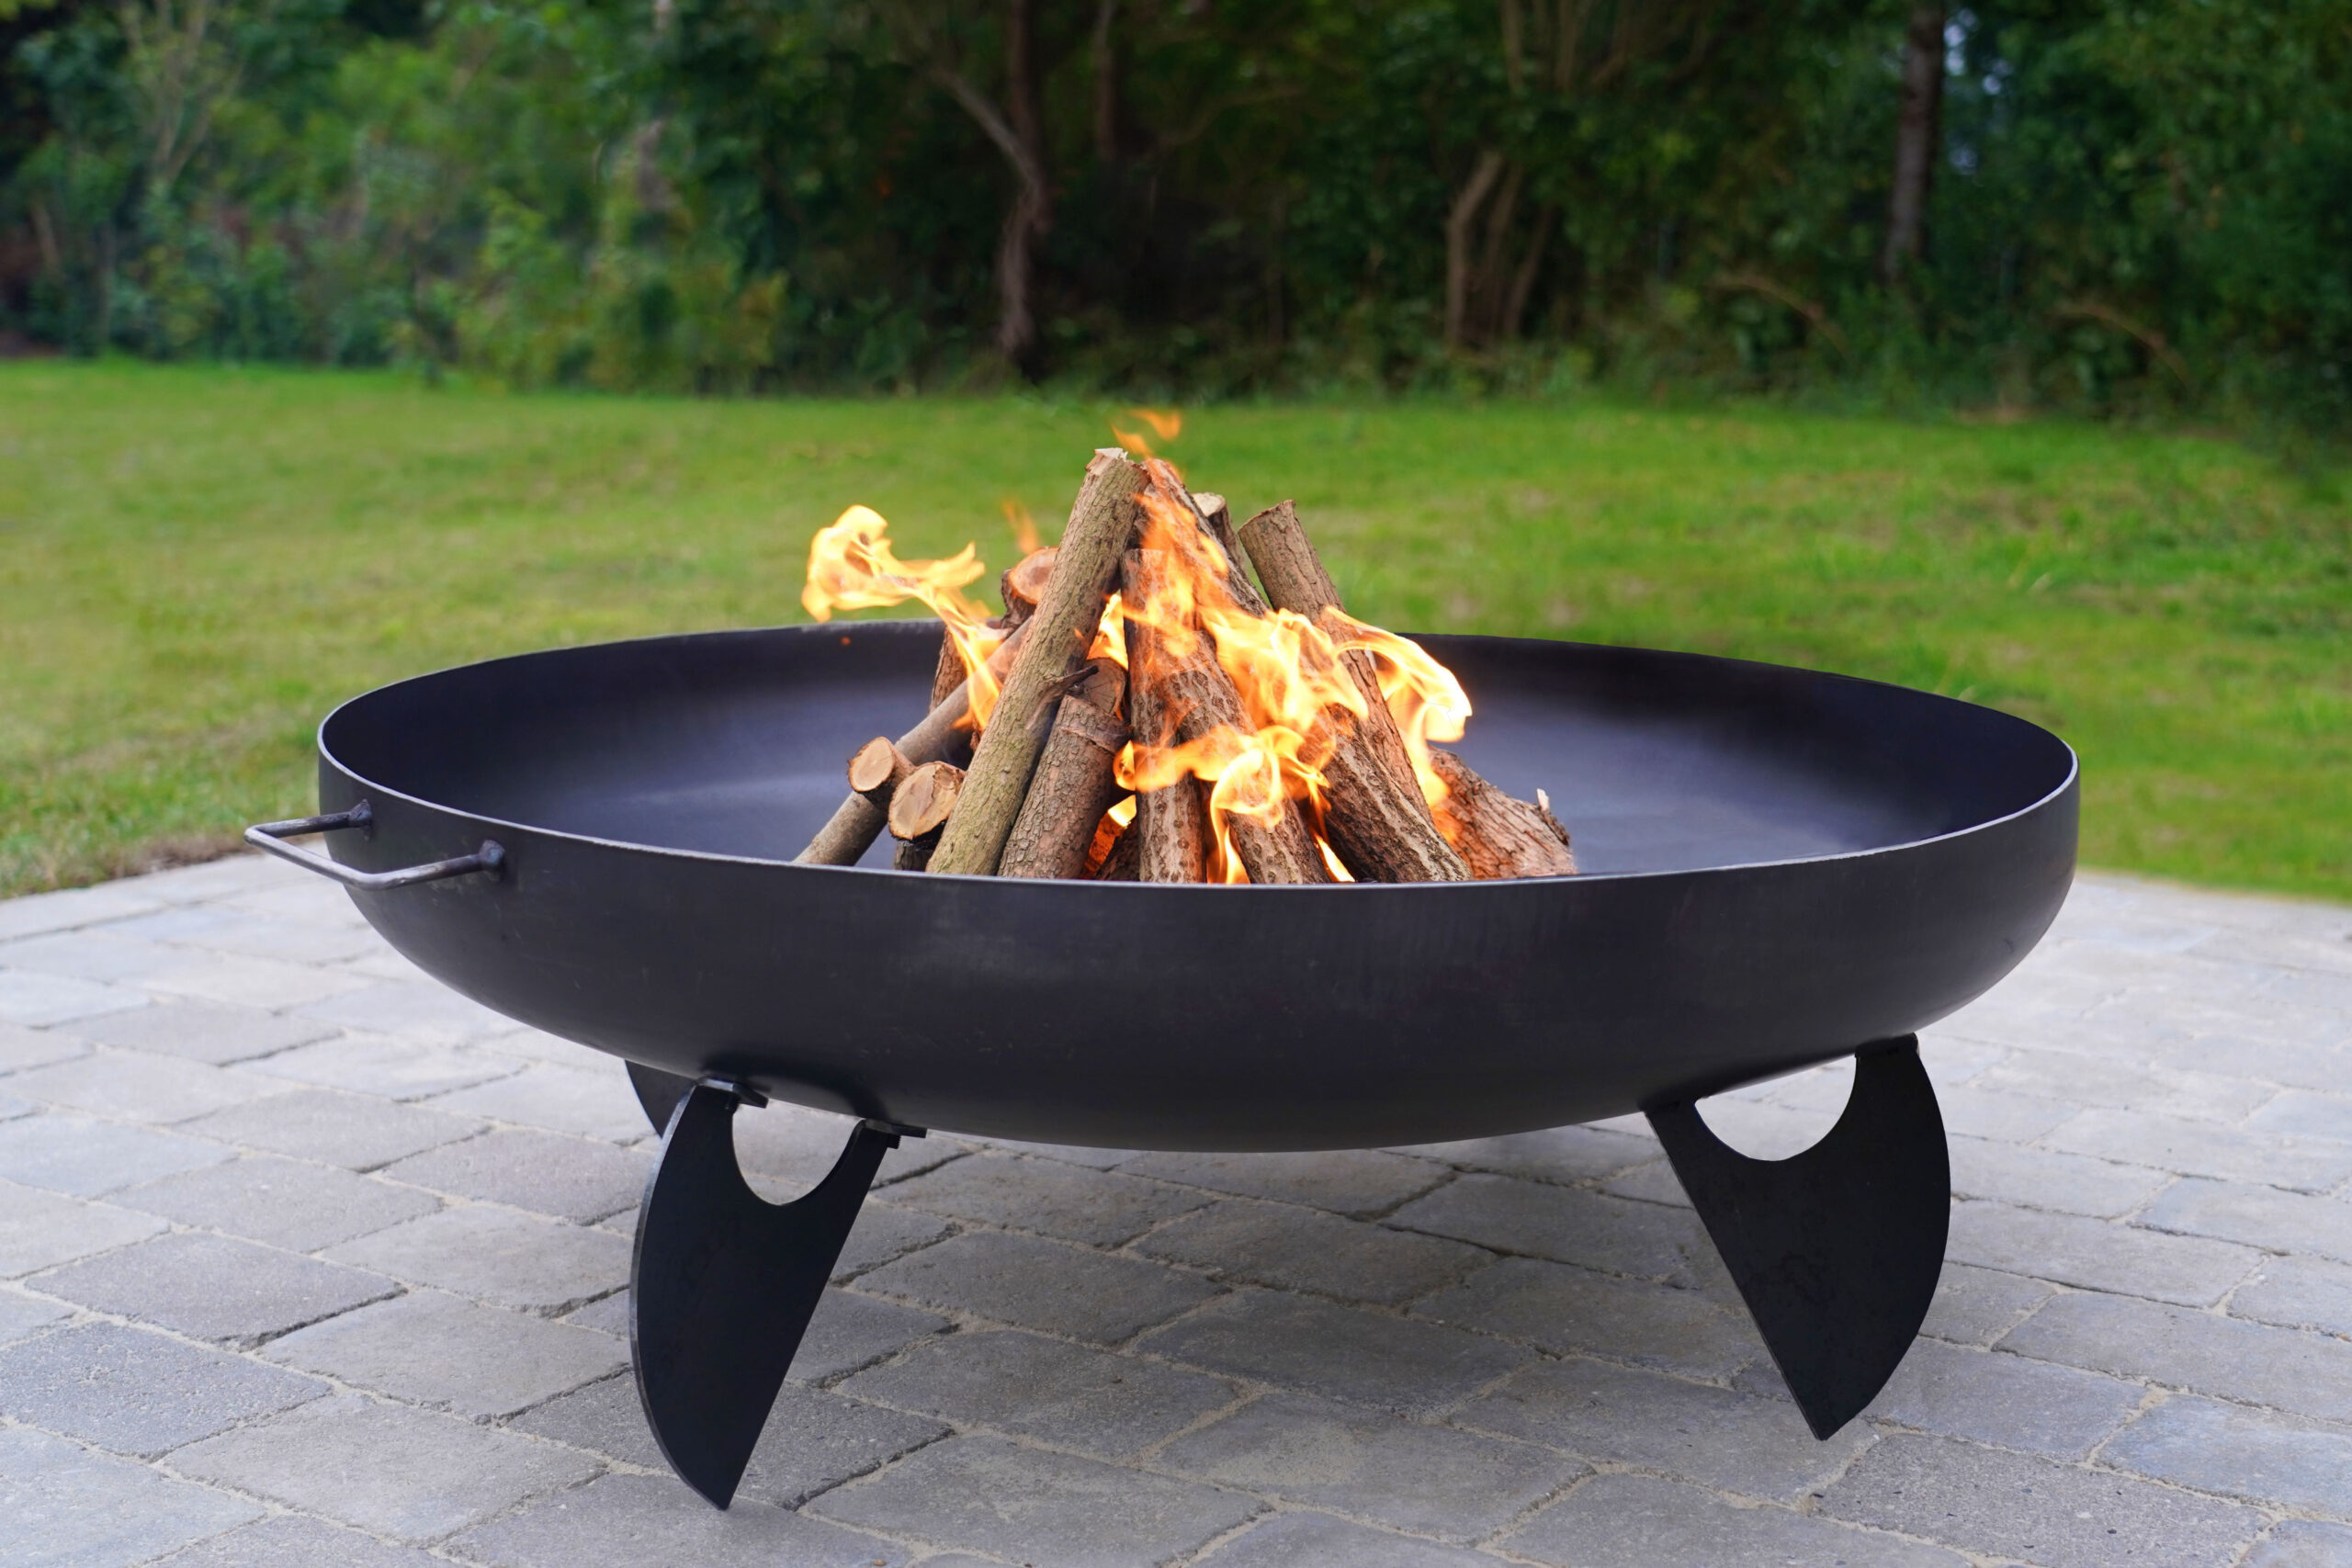 Iron,Fire,Pit,And,Burning,Fire,In,A,Garden,.